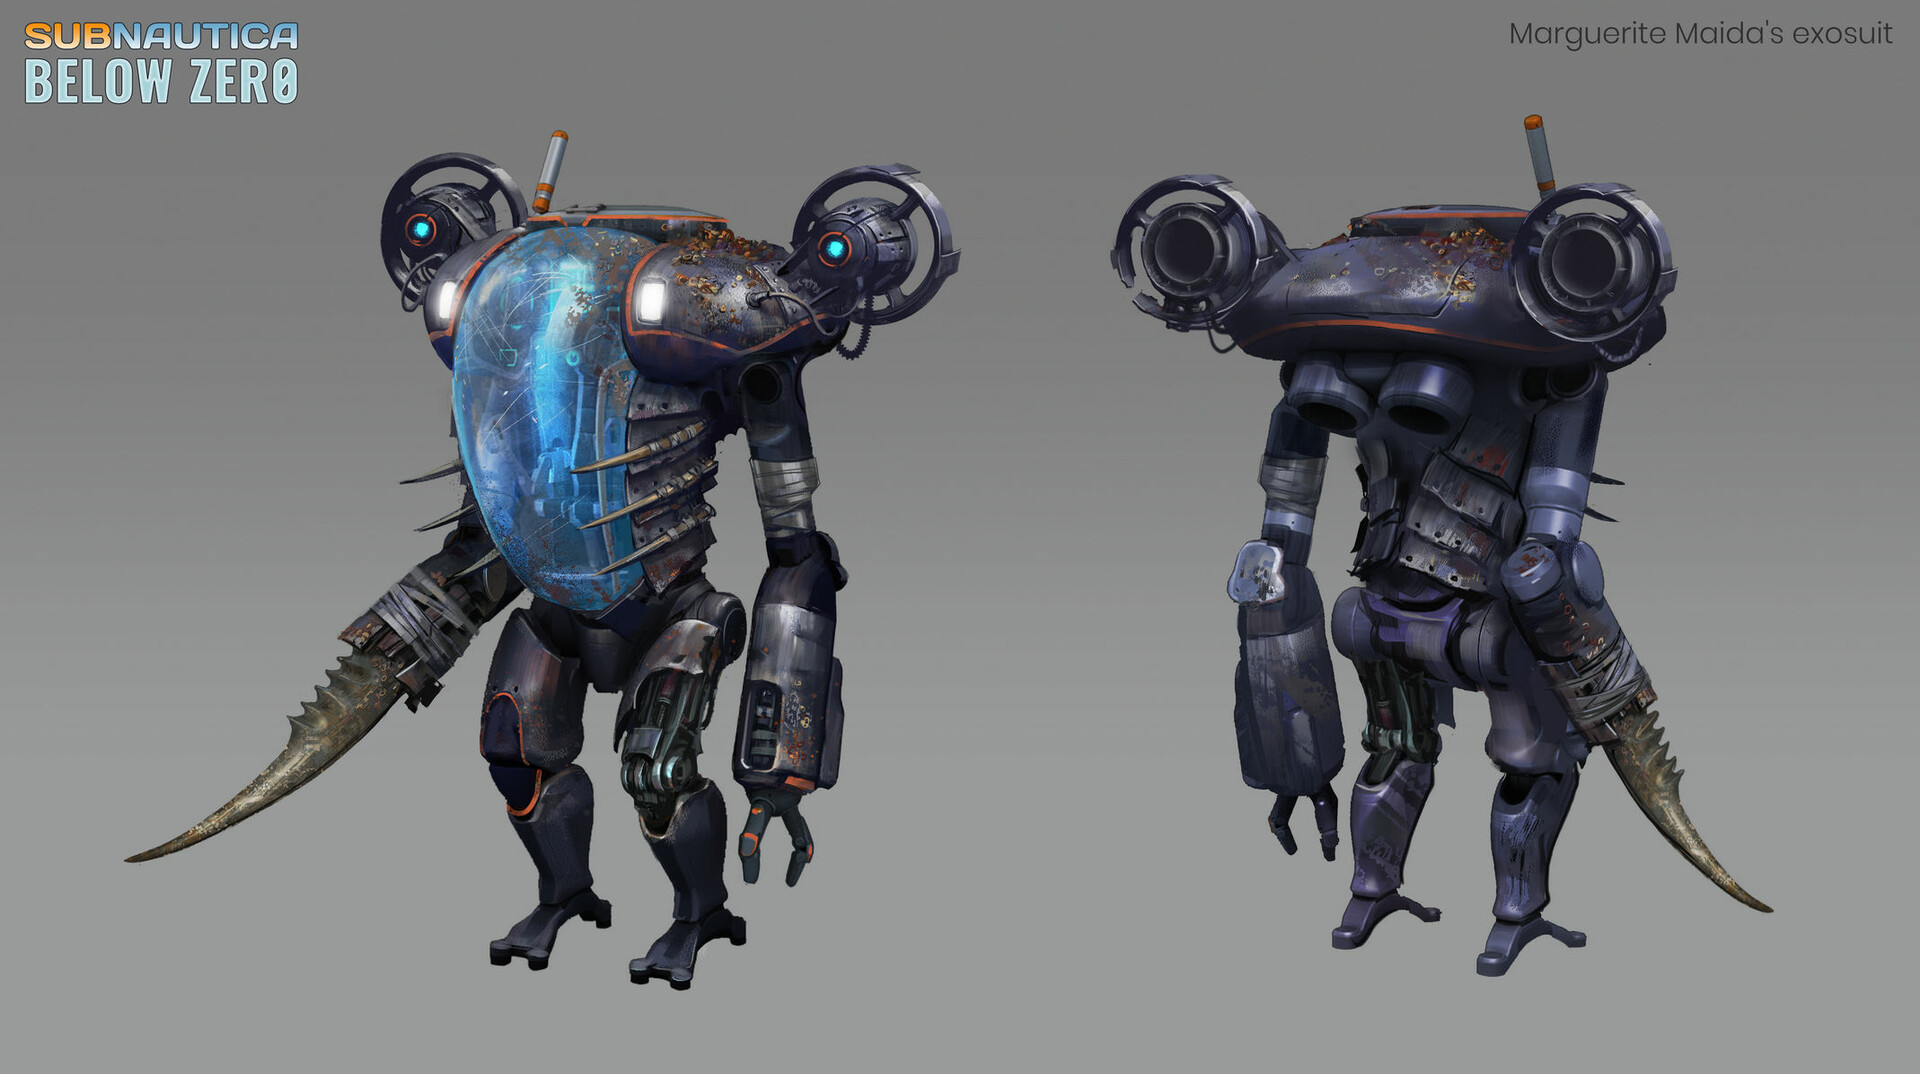 Marguerite's exosuit for deep water travelling.